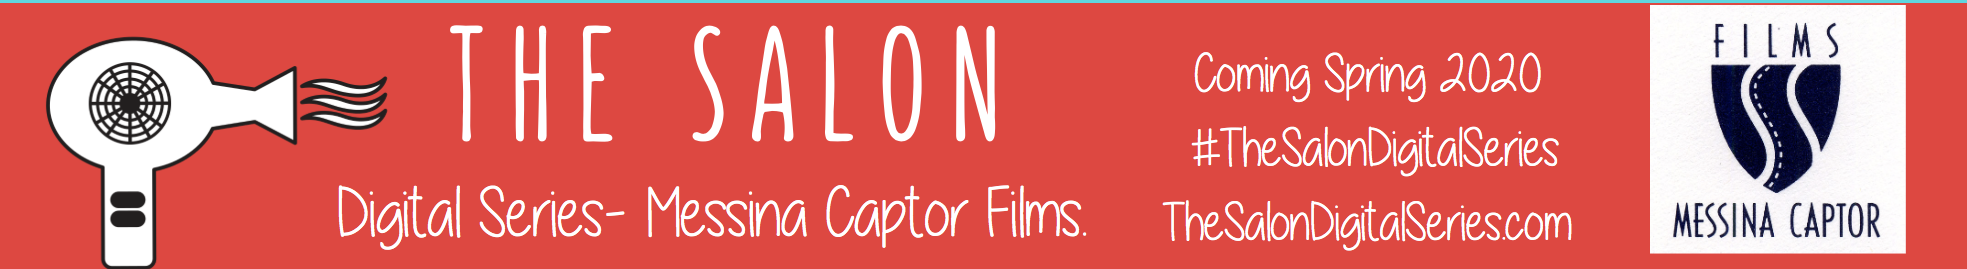 THE SALON DIGITAL SERIES HEADER IMAGE